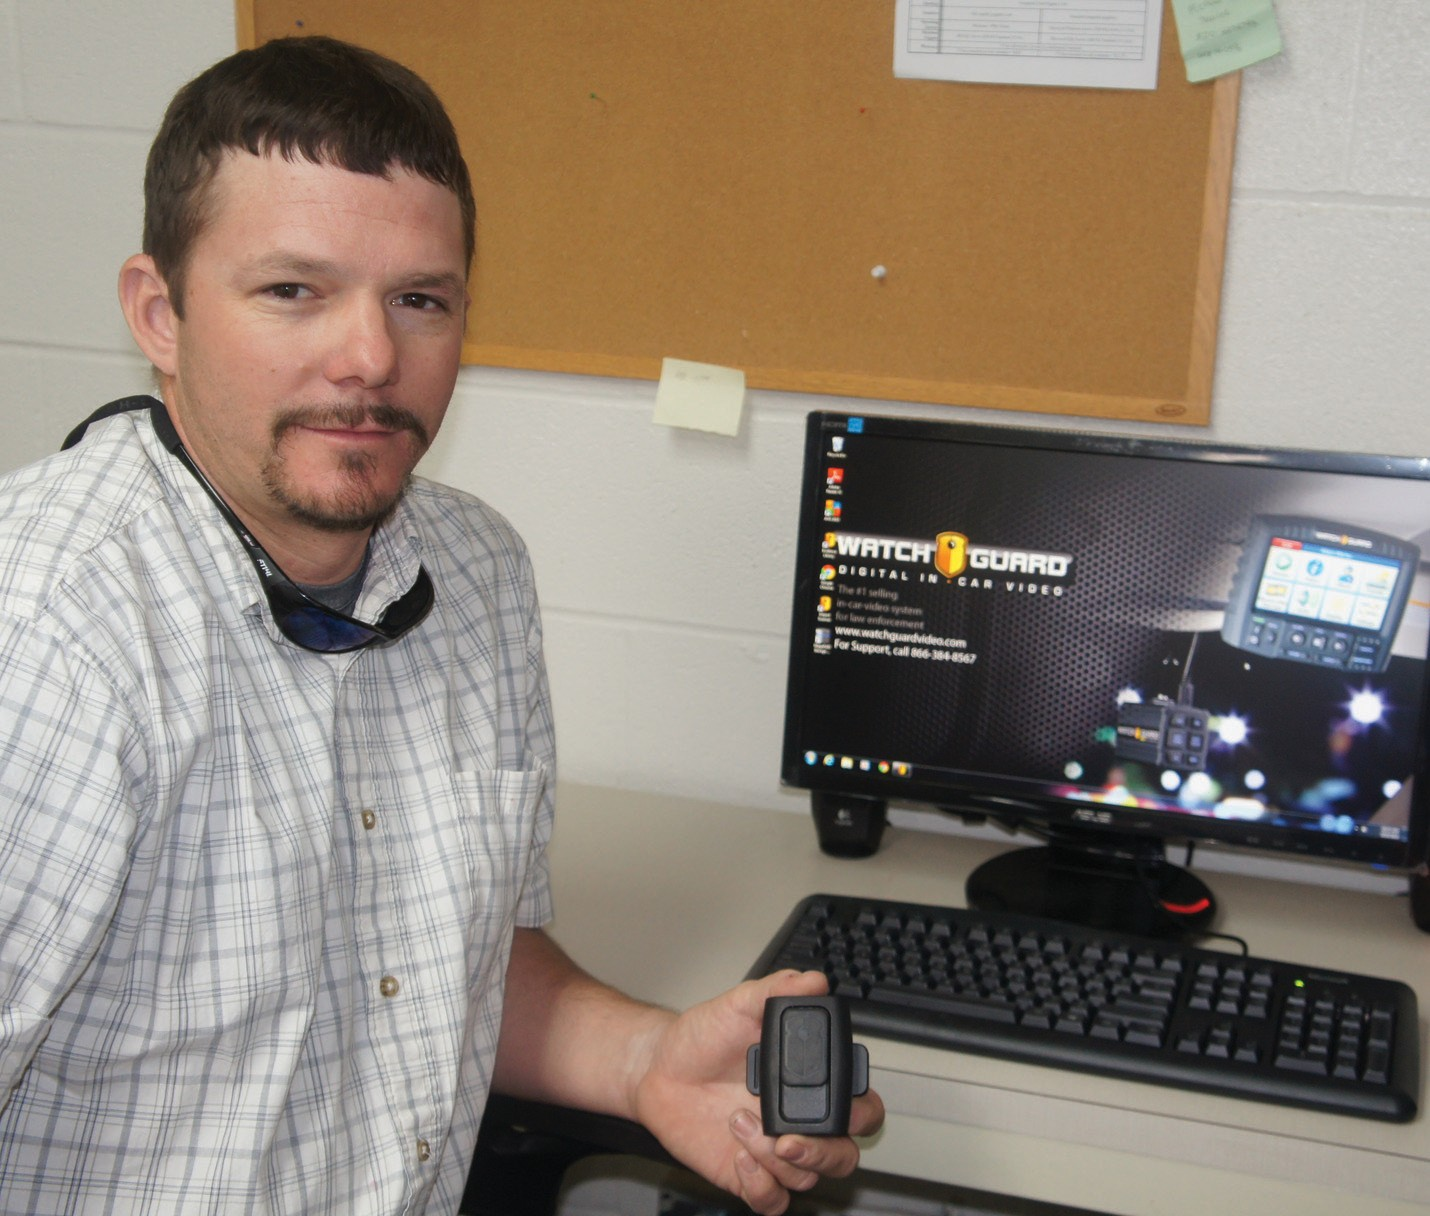 Bruce Hickman, City of Poteet Code Compliance Officer displays one of the body cameras used by the Poteet Police Department.